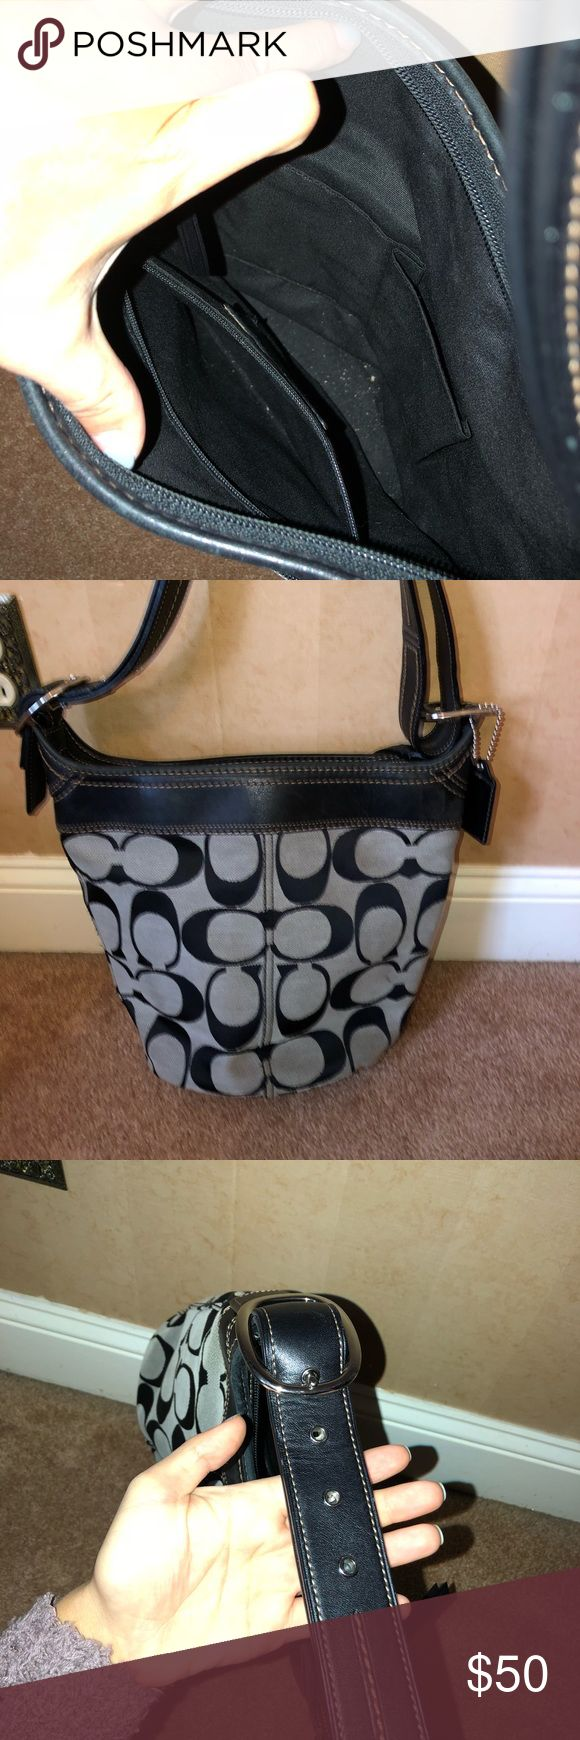 Black coach pocketbook Great condition  Worn with care Bags Shoulder Bags